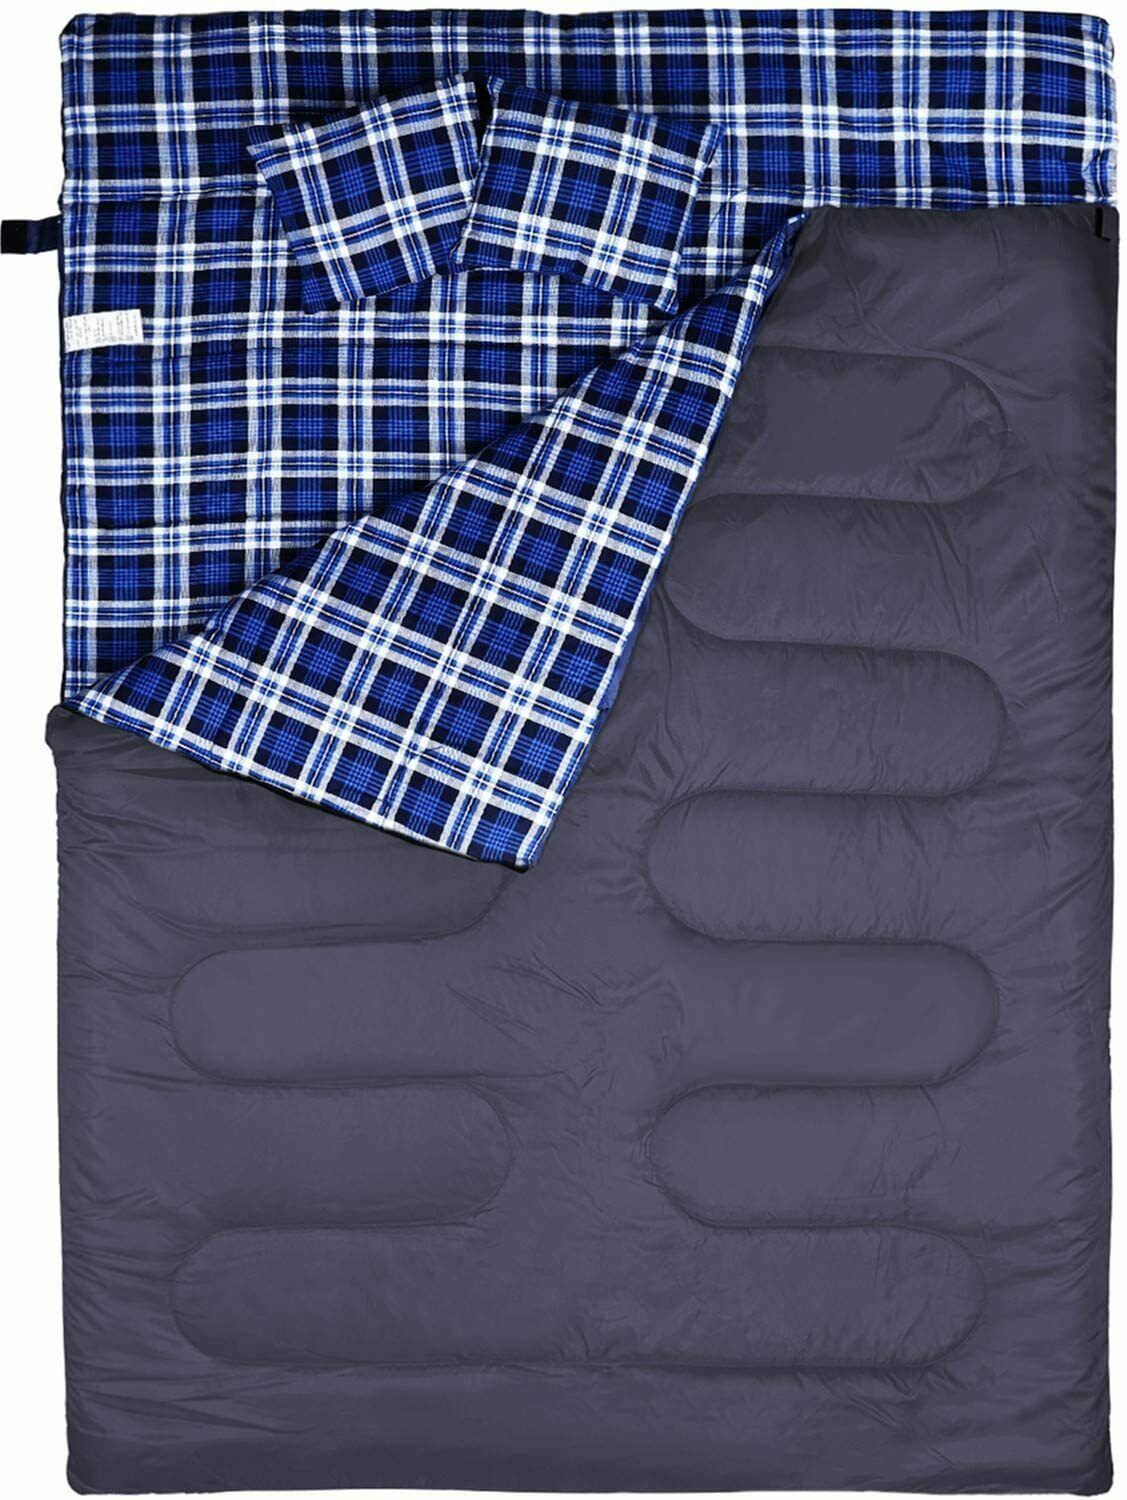 BESTEAM Cotton Flannel Double Sleeping Bag for Backpacking,